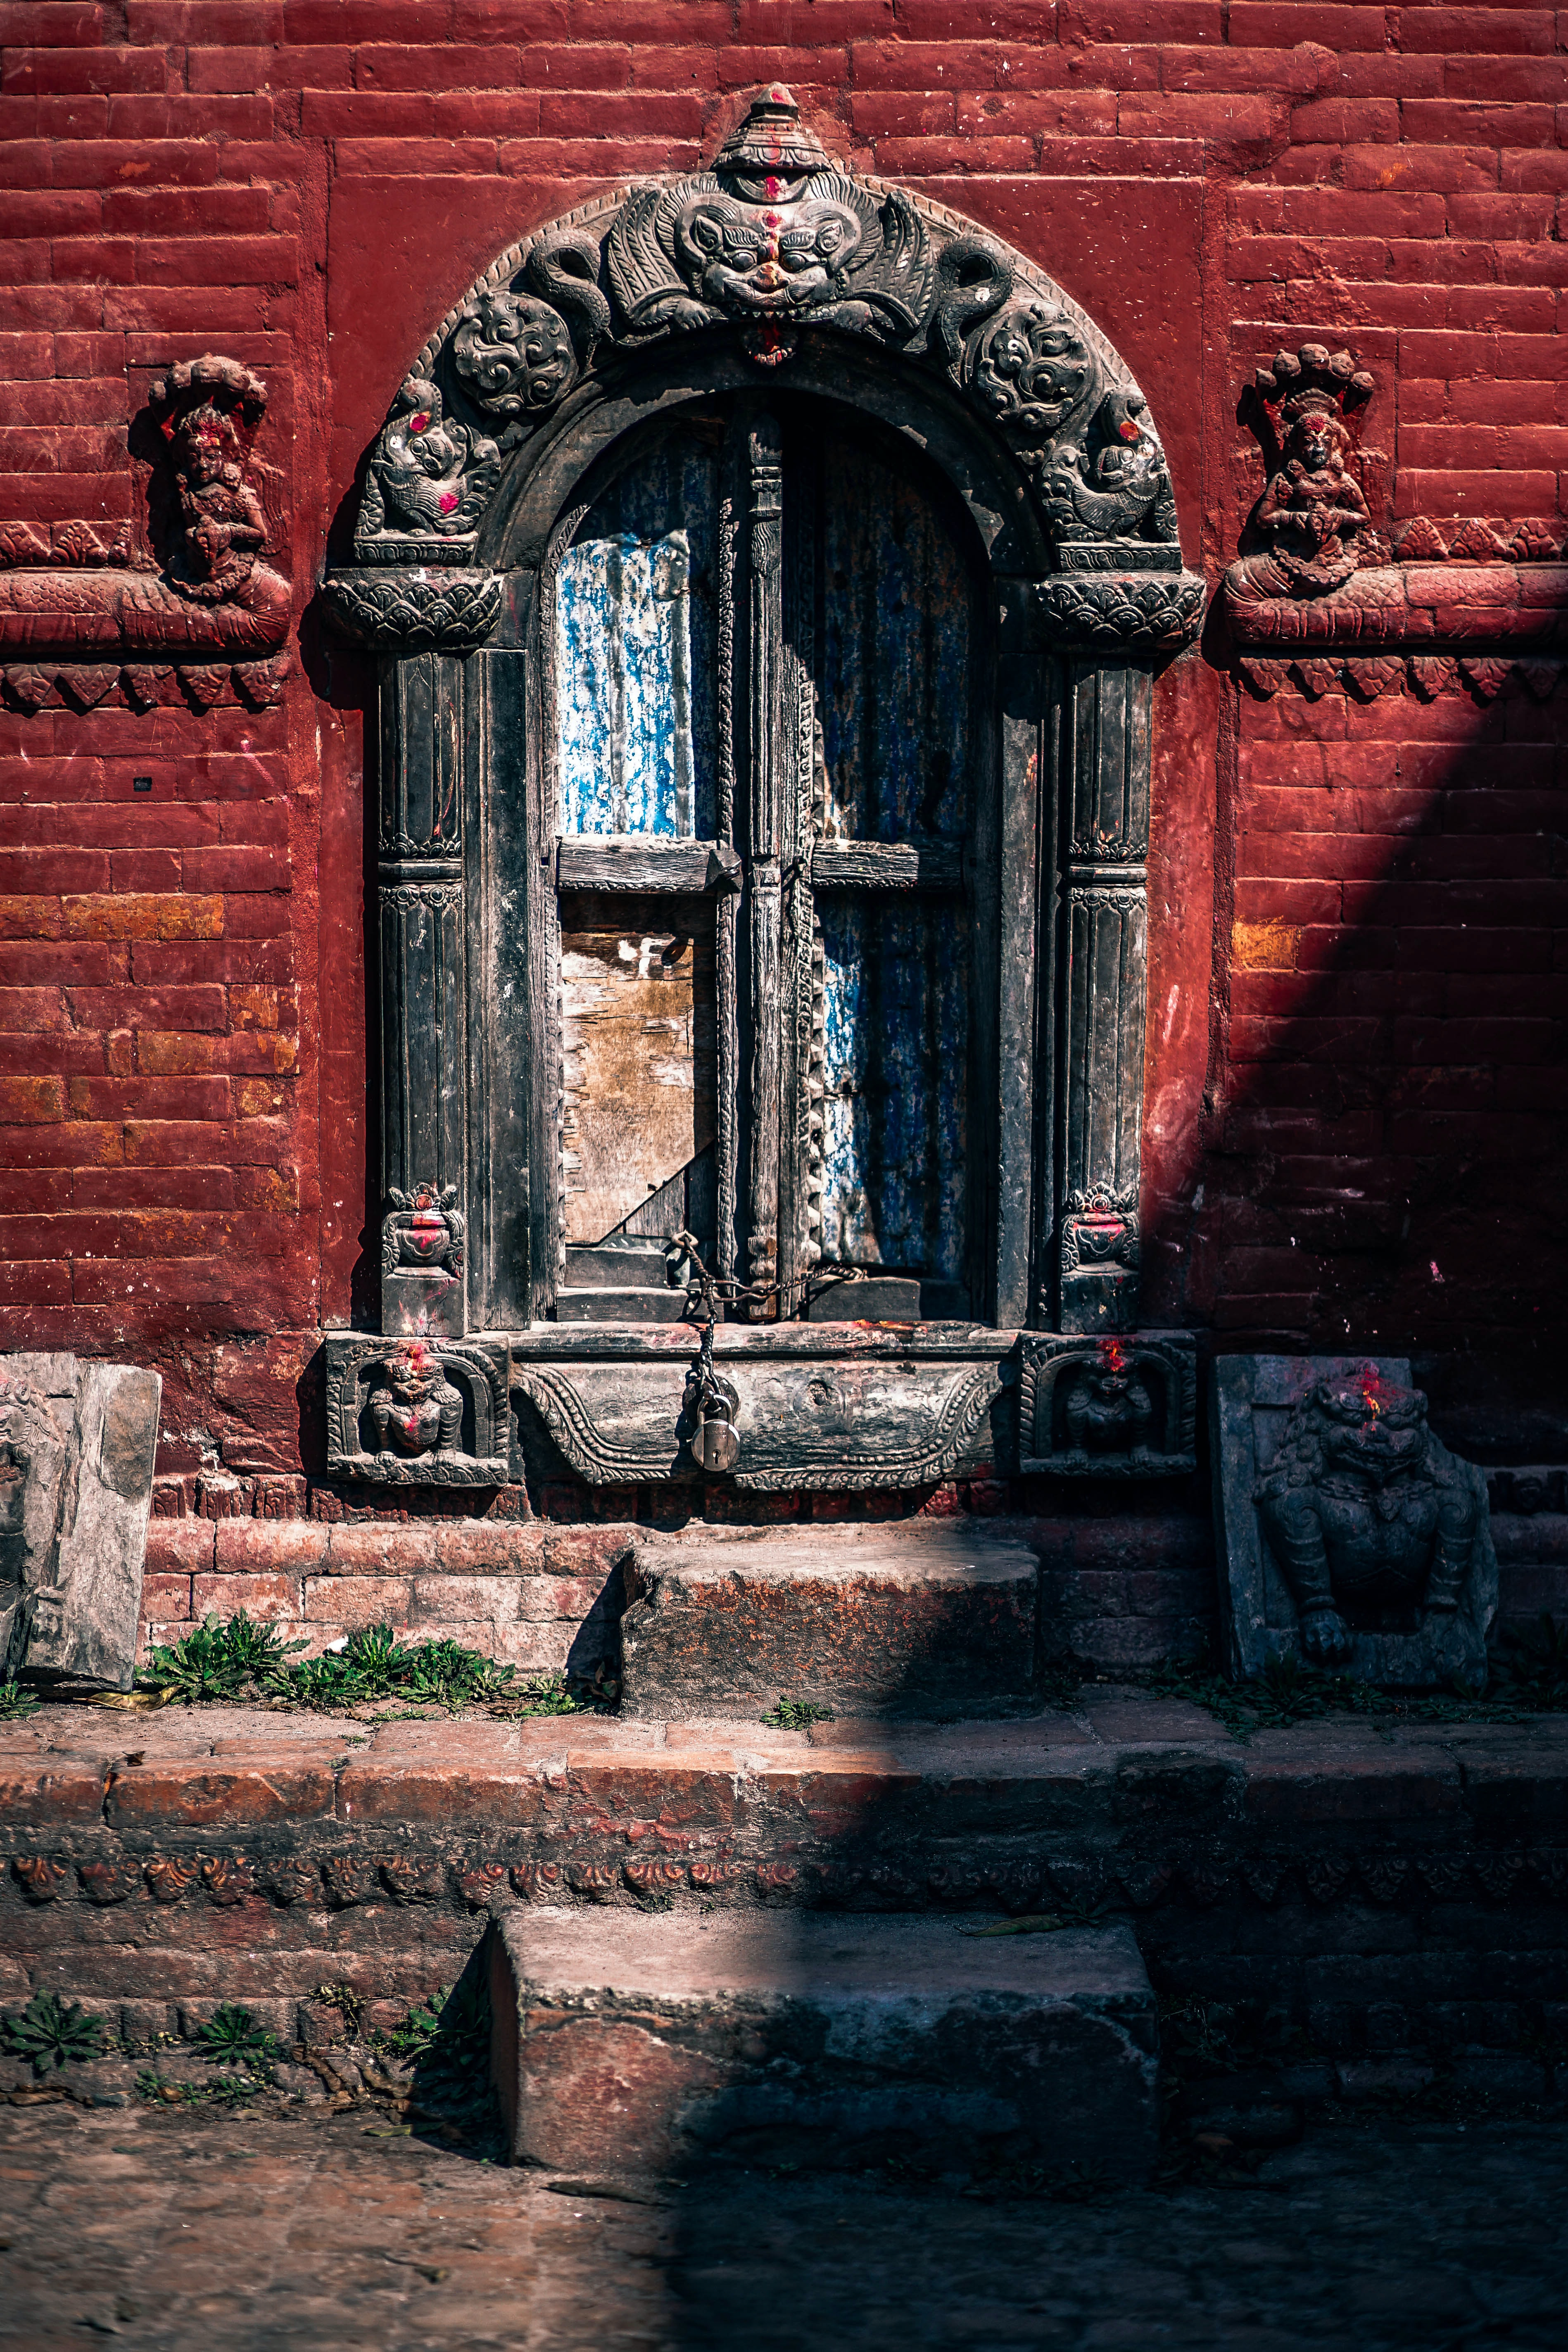 A old window surrounded by an ornate stone carving in Kathmandu